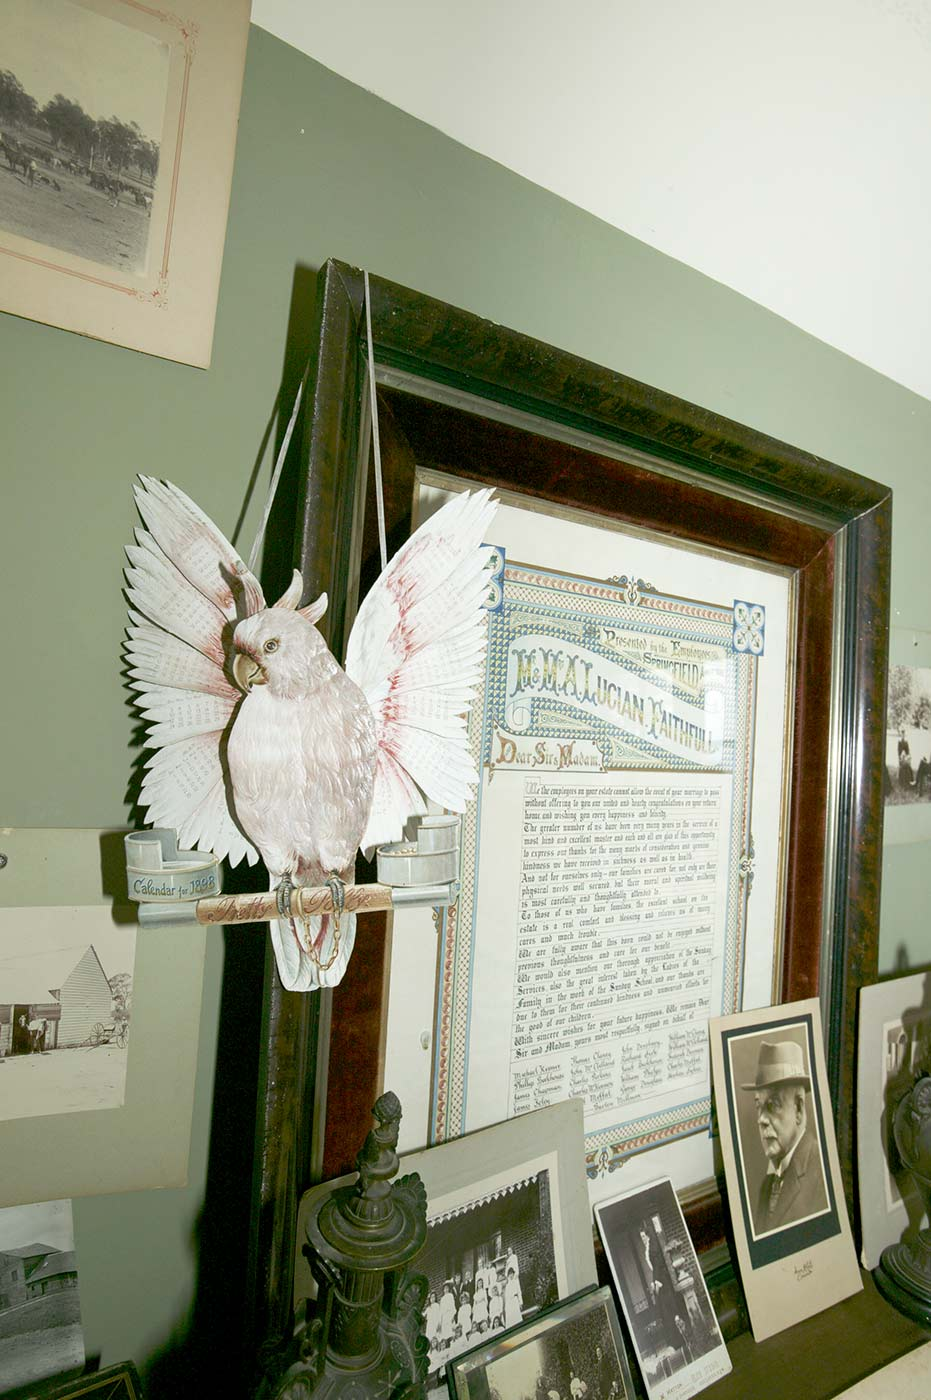 Photographs and documents on a wall and shelf. A paper sculpture of a cockatoo hangs from a framed document. - click to view larger image